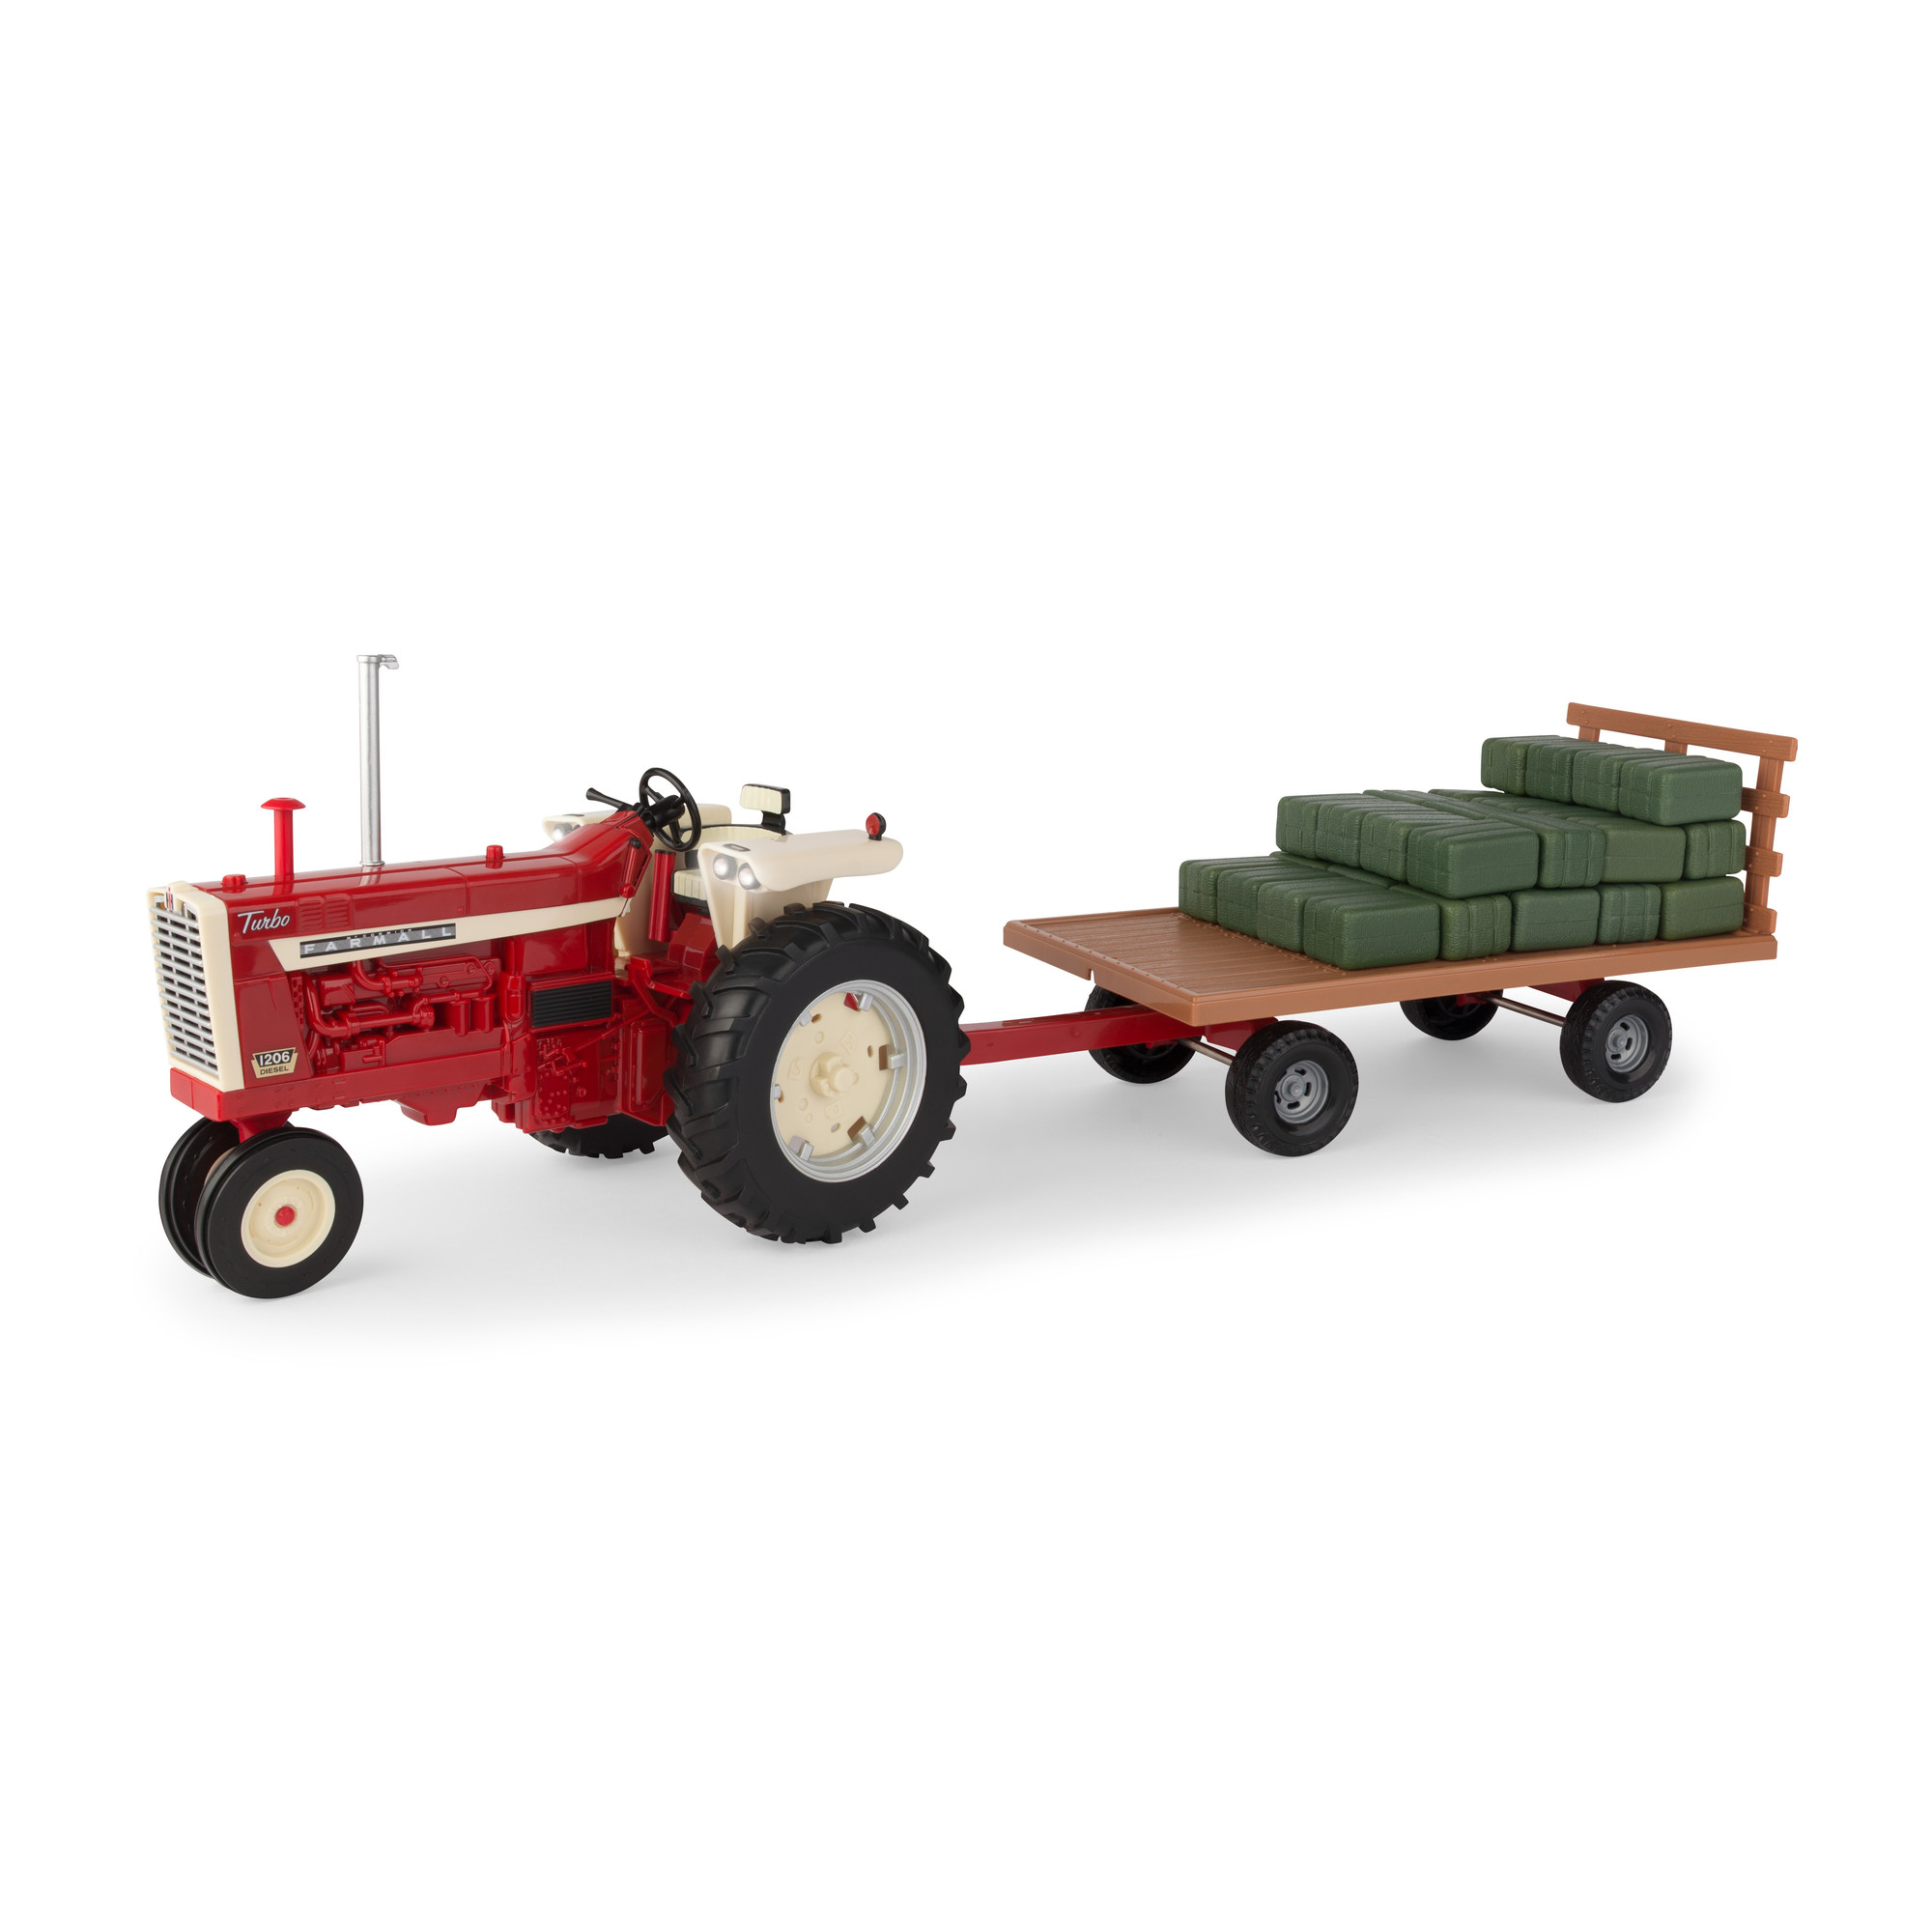 Big Farm 1:16 IH 1206 Narrow Front Tractor with Hay Wagon and Bales by TOMY